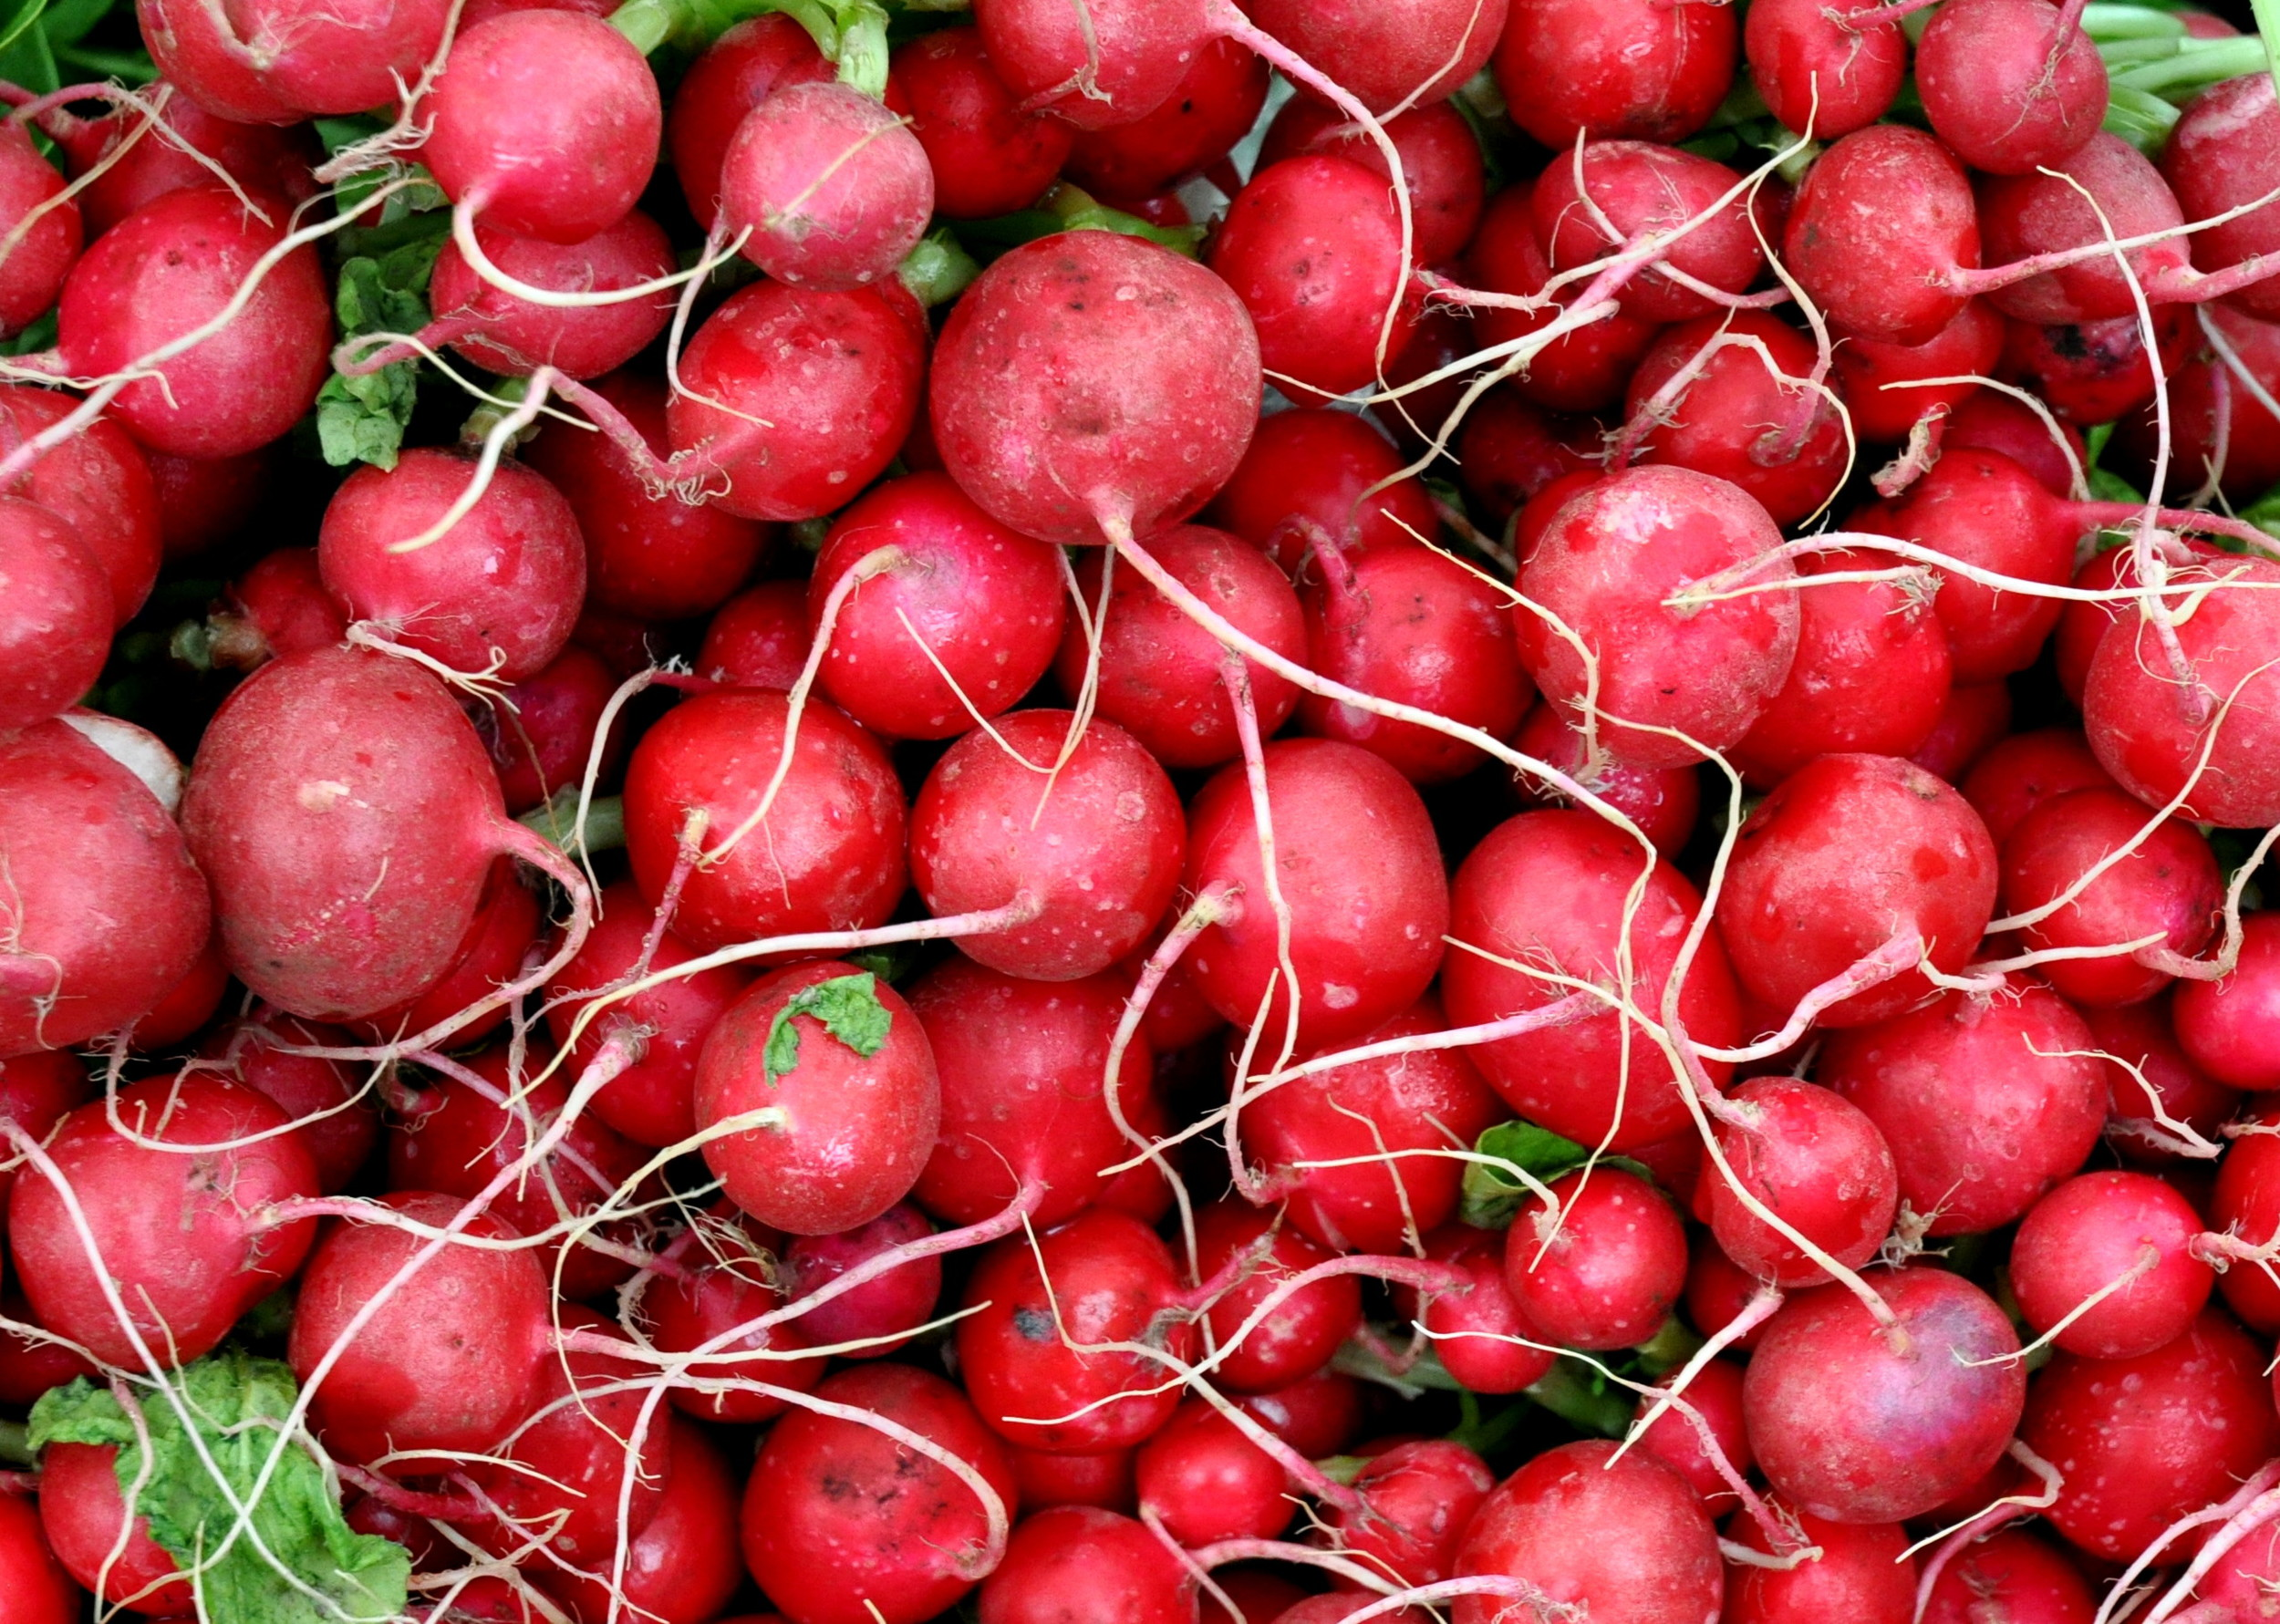 Red radishes from Stoney Plains Organic Farm. Photo copyright 2013 by Zachary D. Lyons.